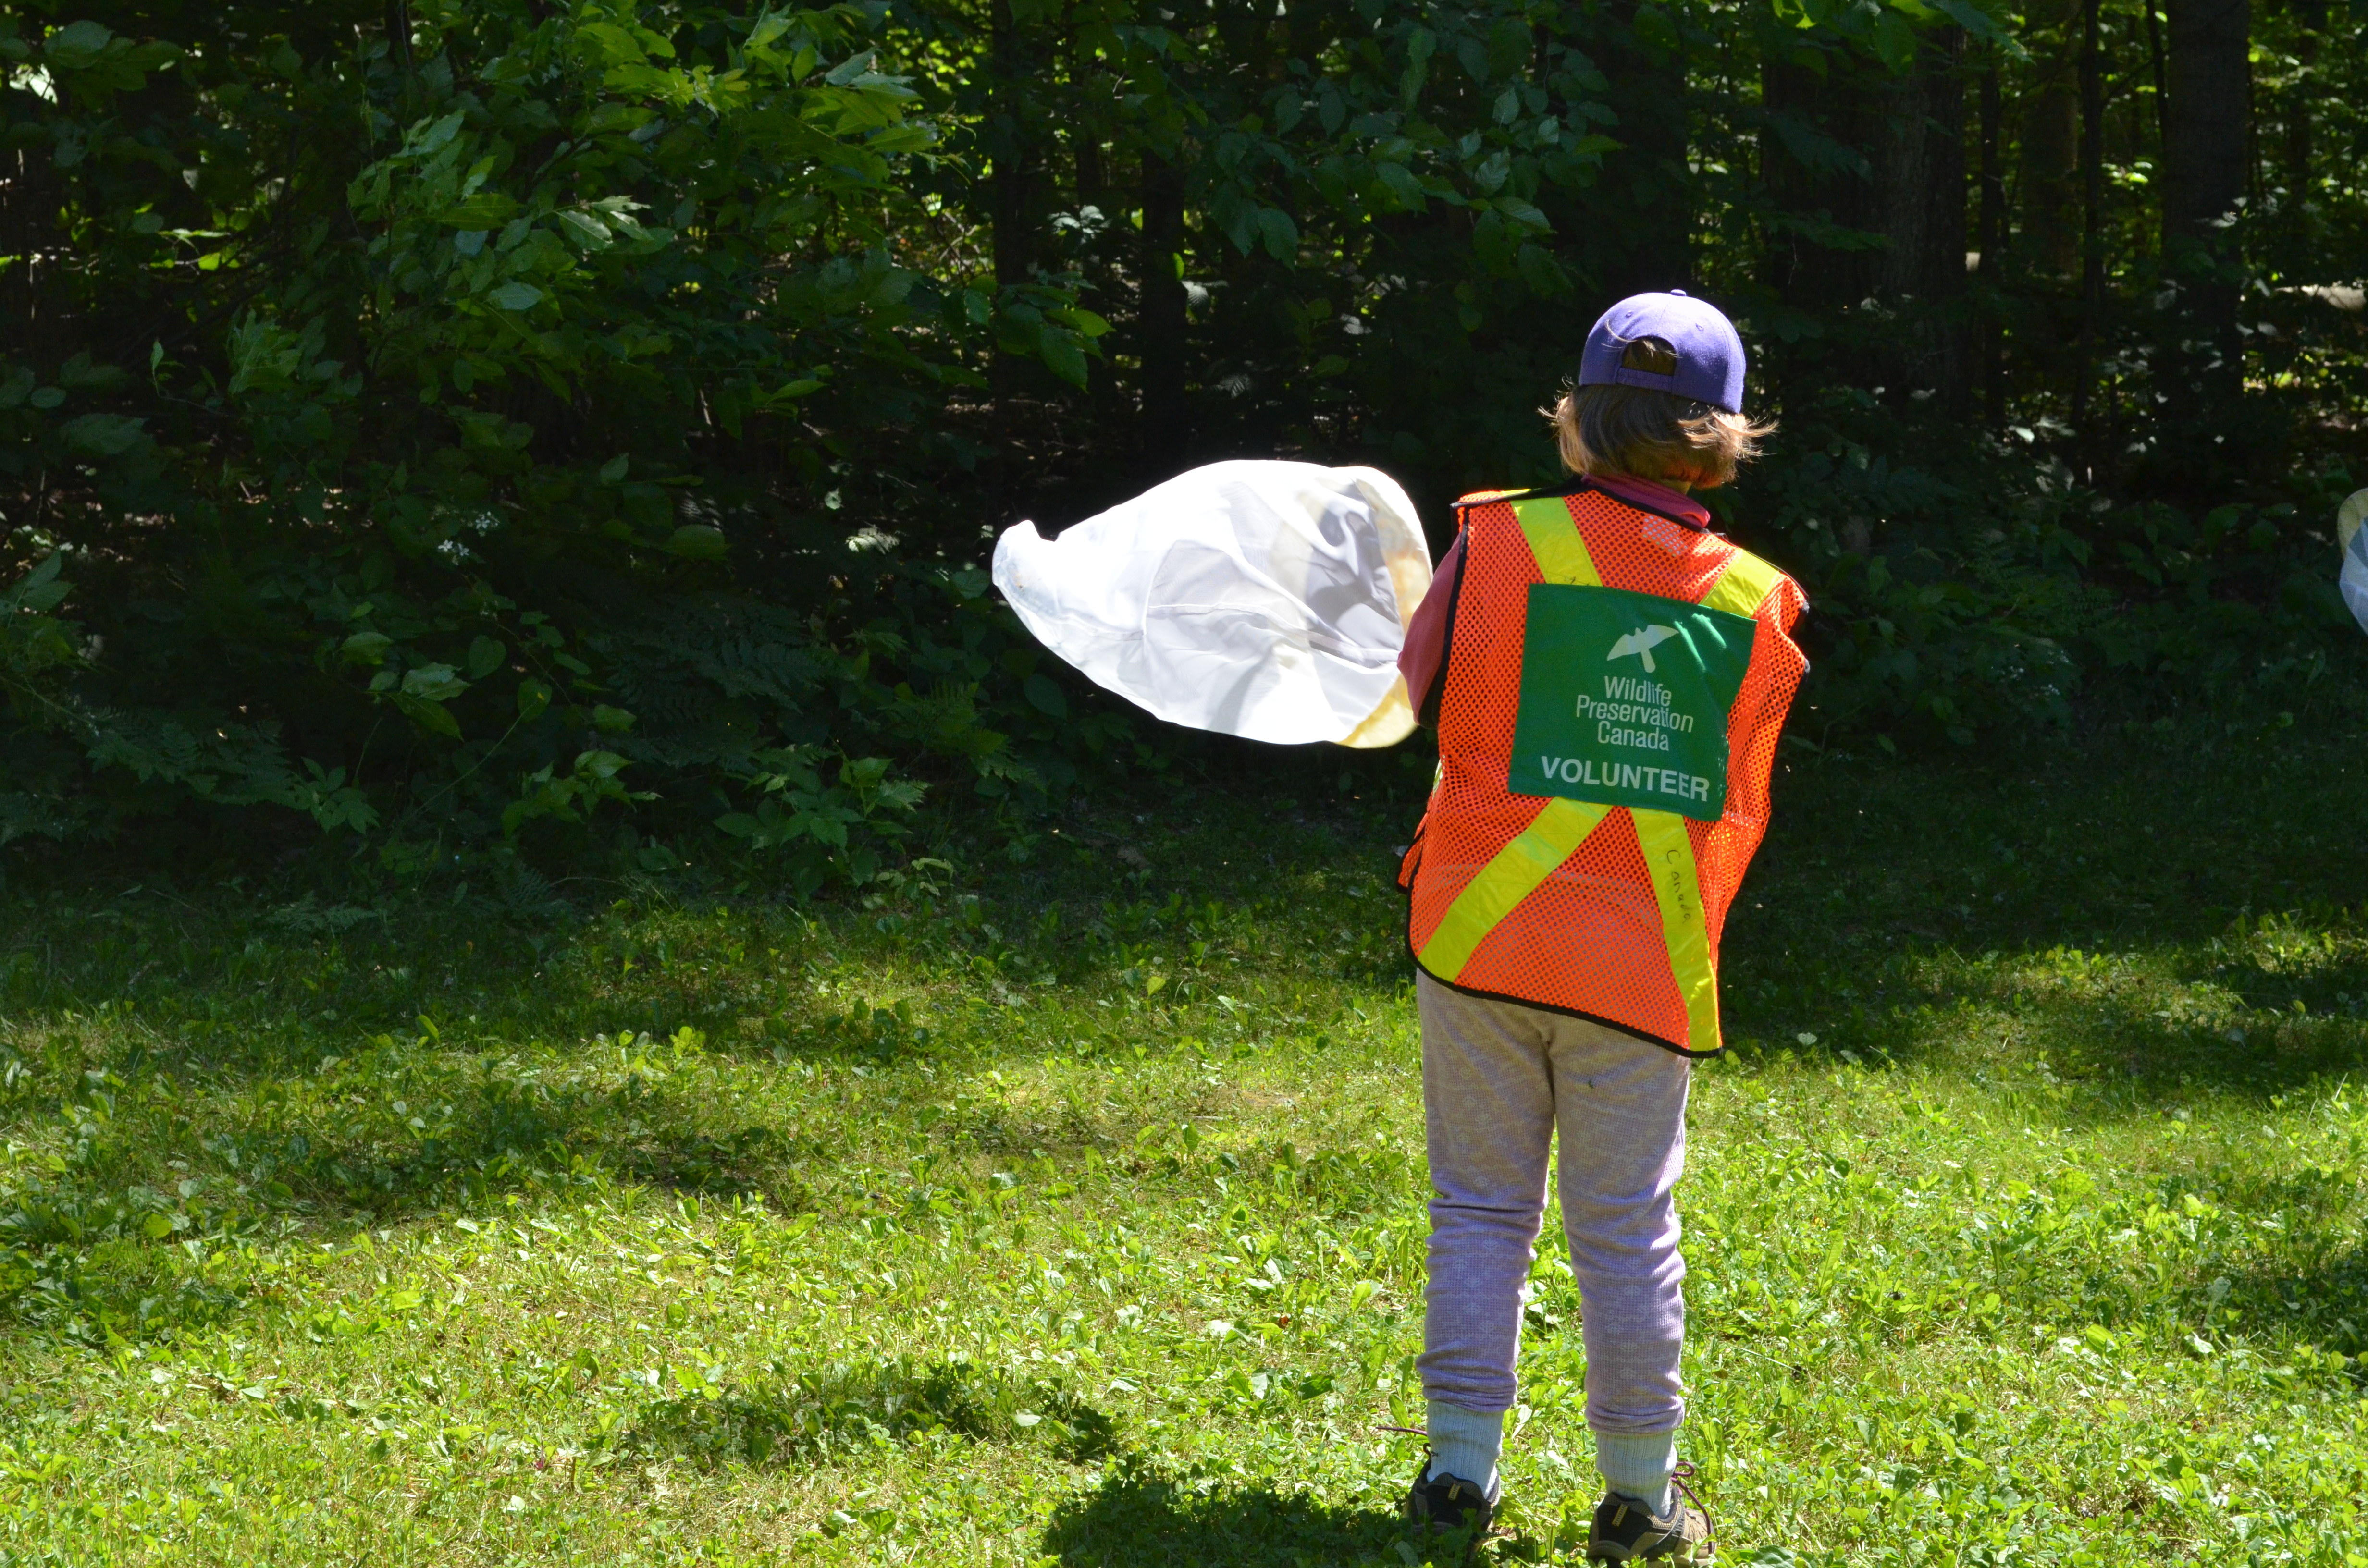 A kid with an orange reflective vest with a large green patch on the back that says Volunteer - Wildlife Preservation Canada swings a net to catch a bumble bee in a grassy area surrounded by trees.